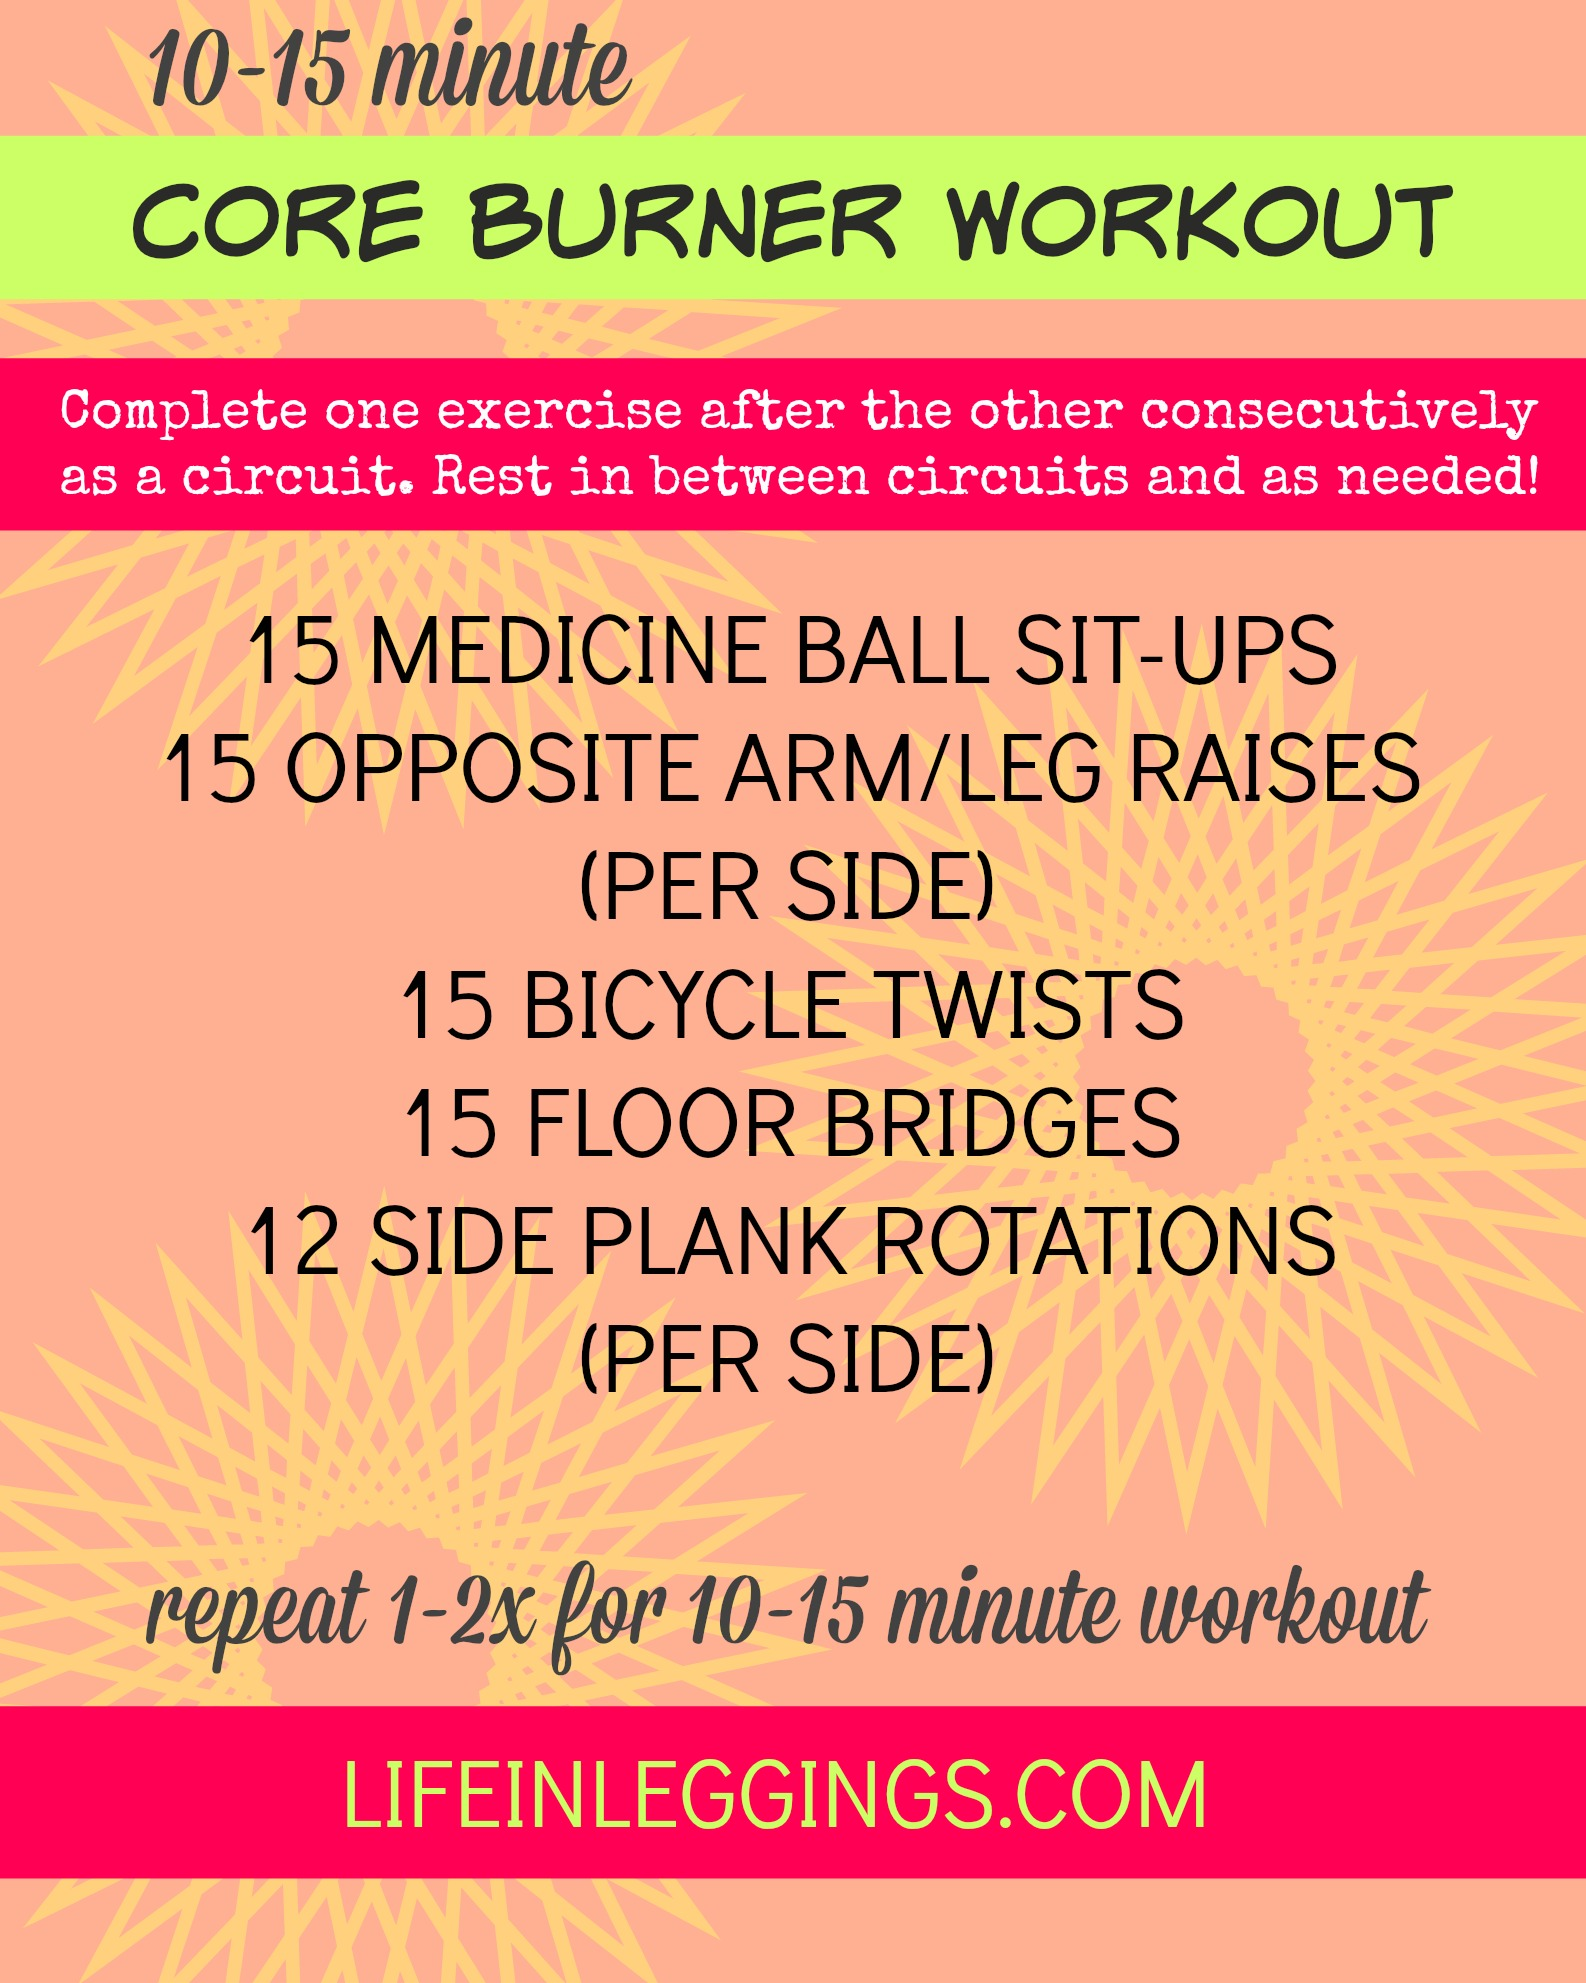 10-15 minute core burner workout